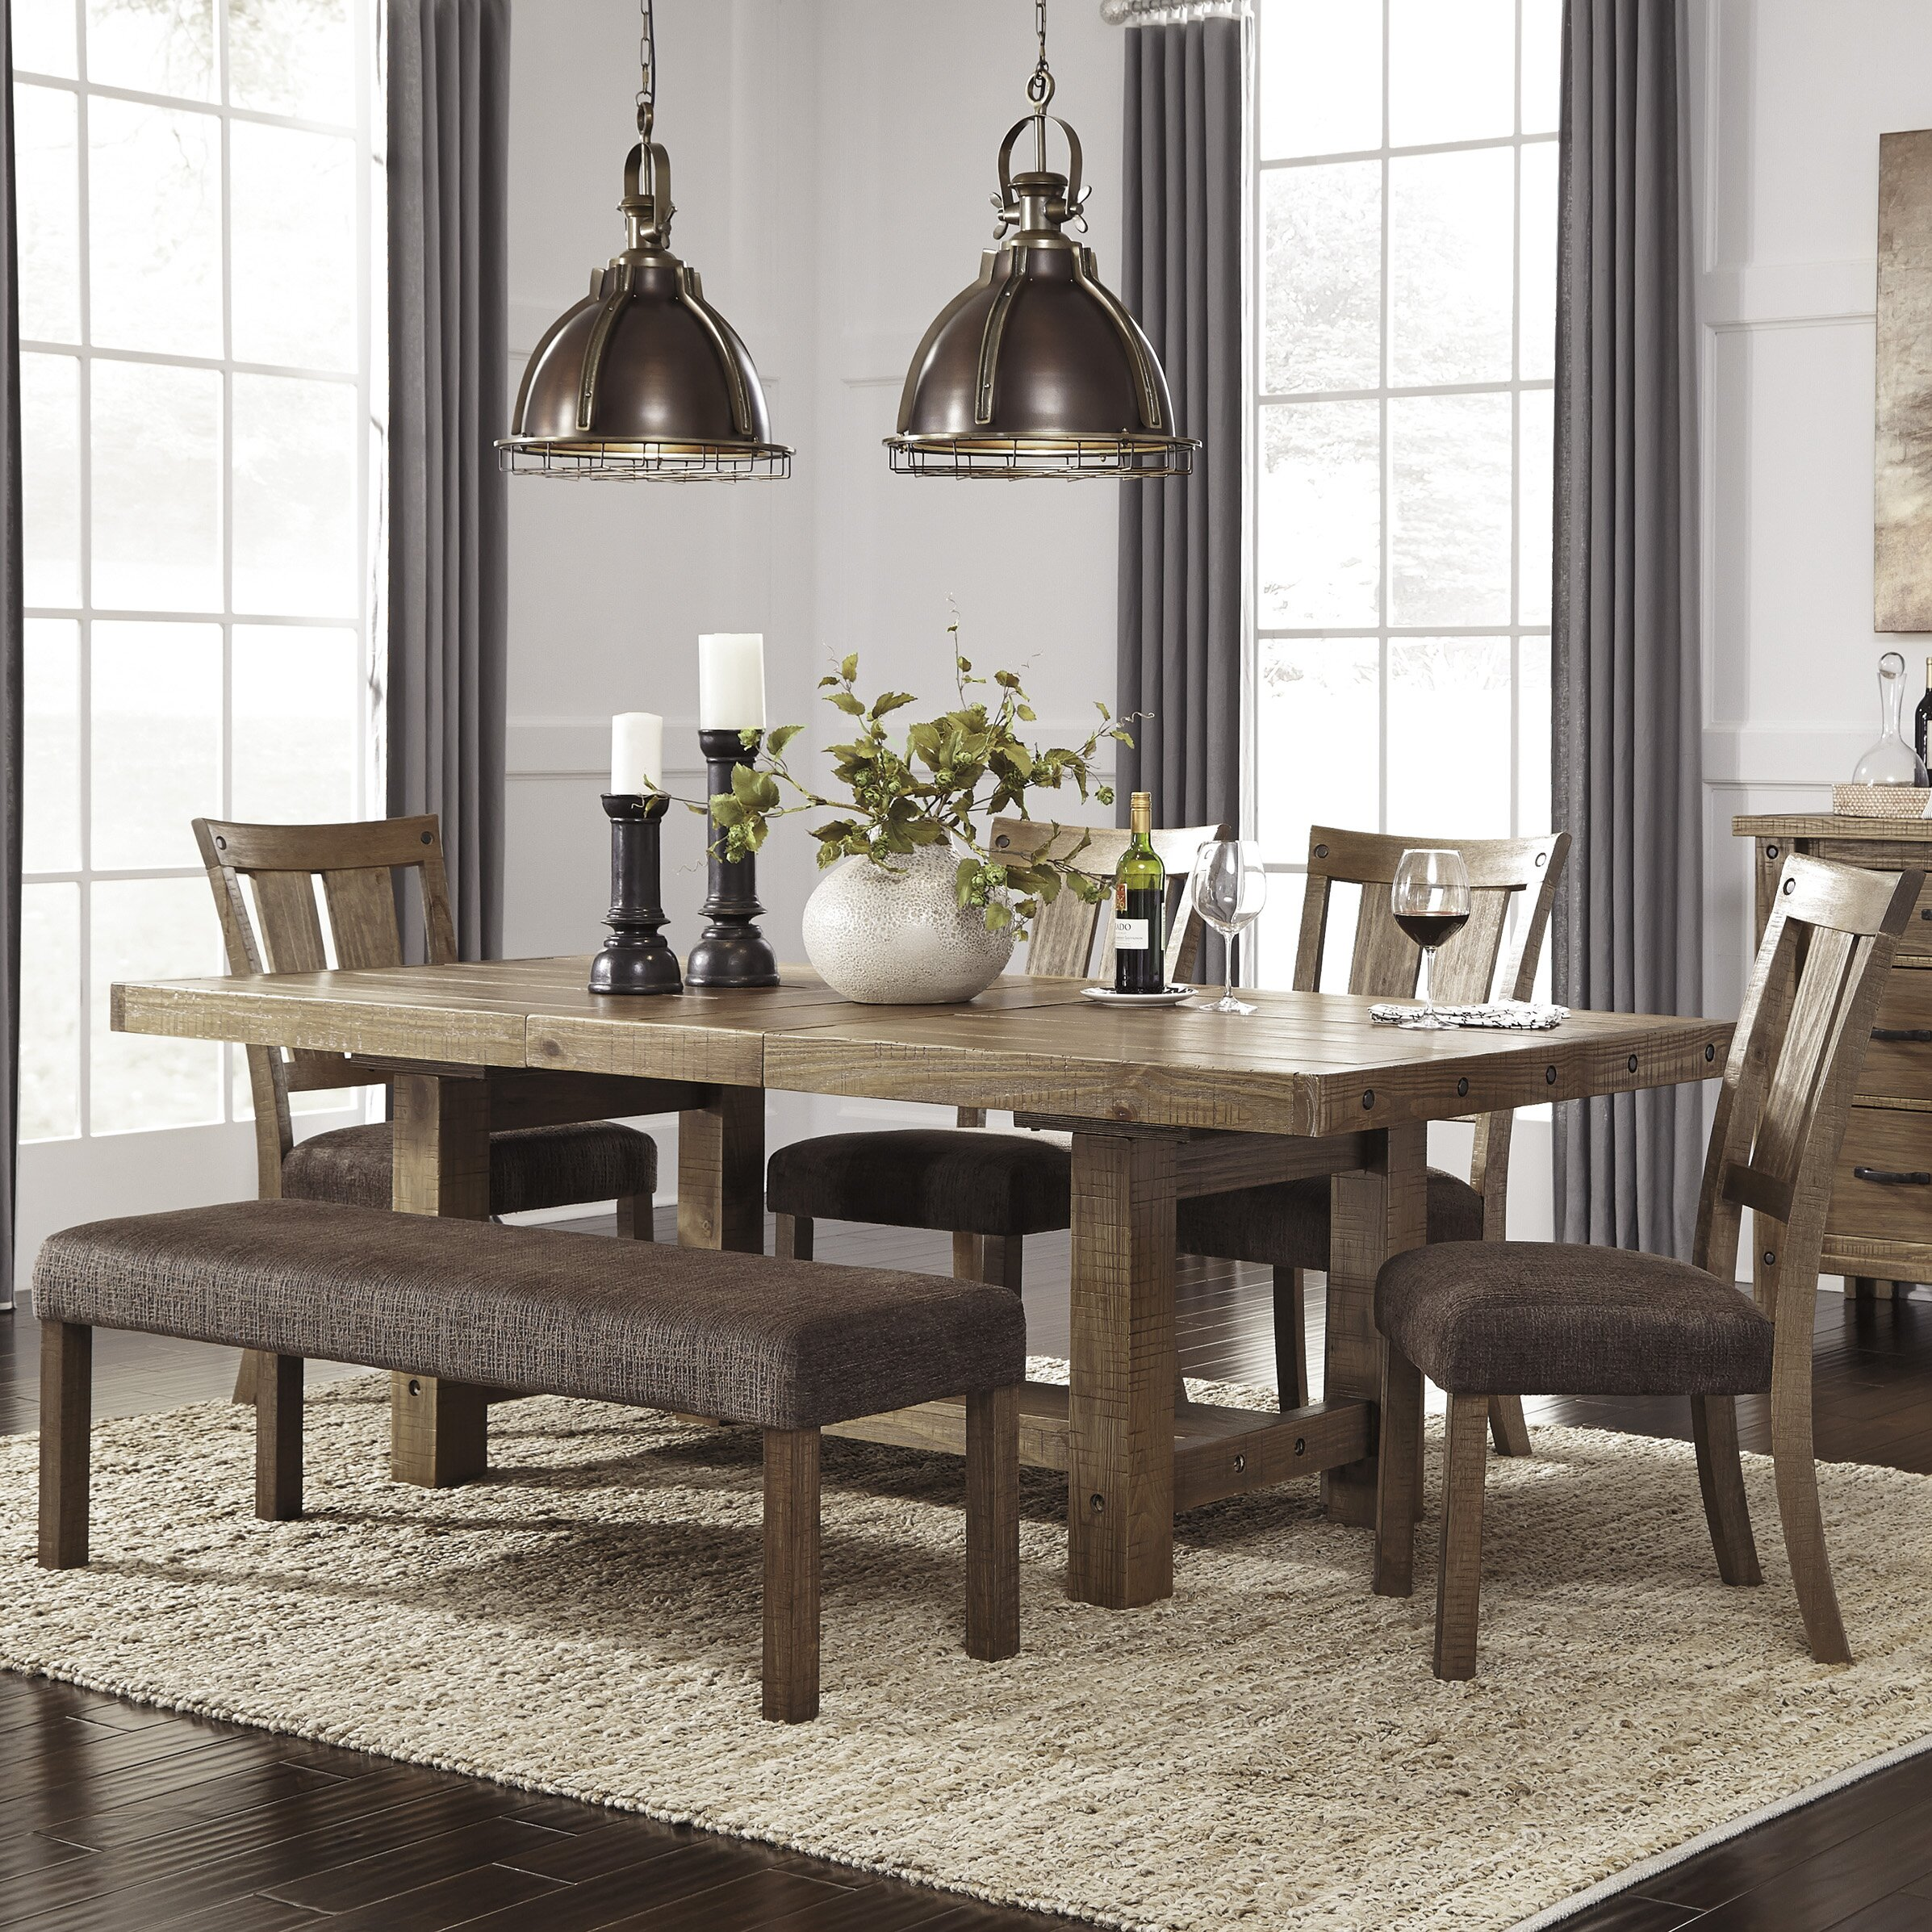 Signature design by ashley 9 piece dining set reviews for Dining room furniture images